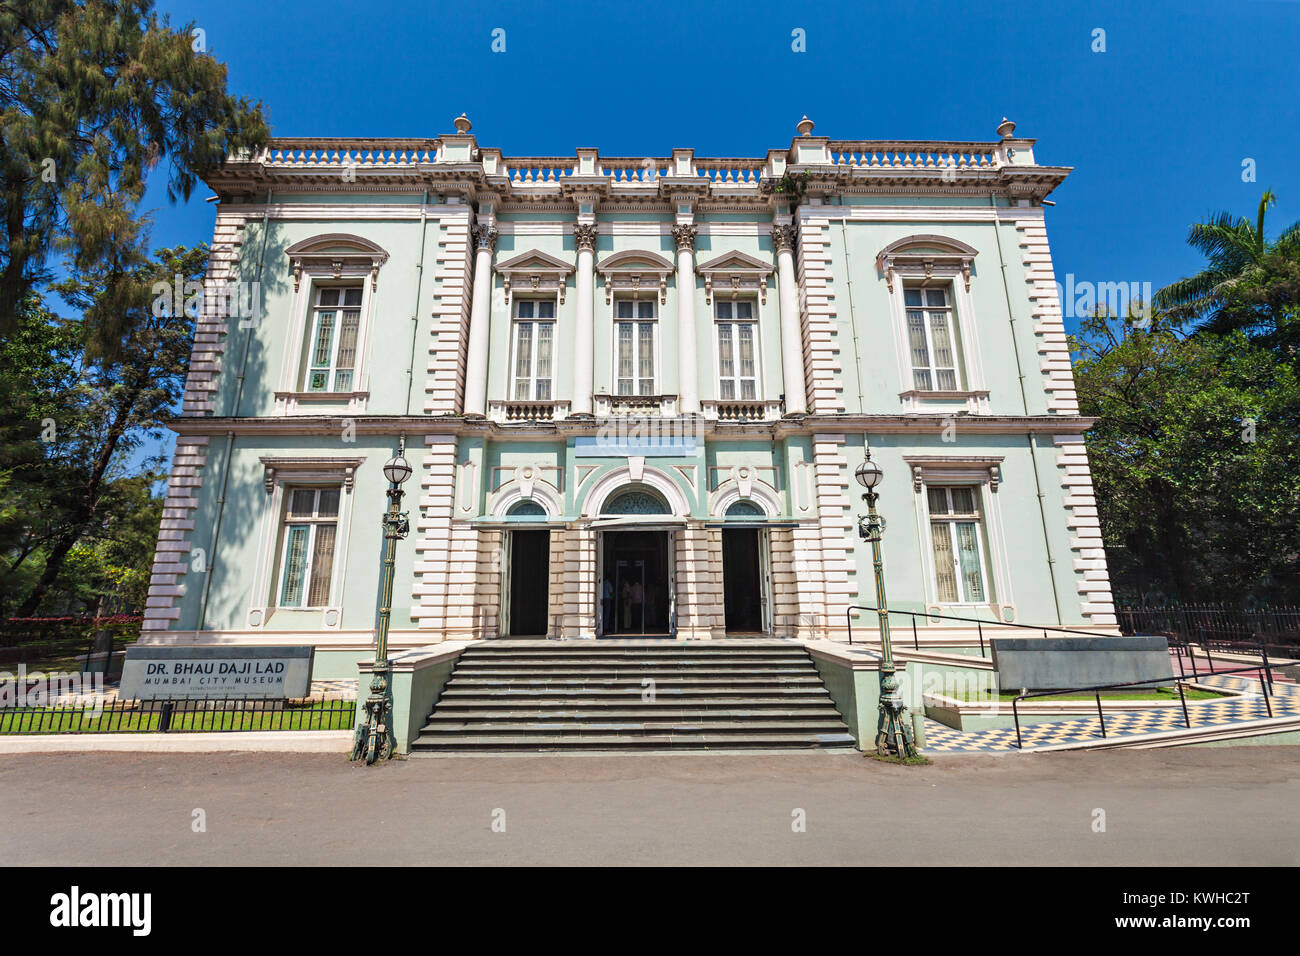 The Dr. Bhau Daji Lad Mumbai City Museum (formerly the Victoria and Albert Museum) is the oldest museum in Mumbai, - Stock Image